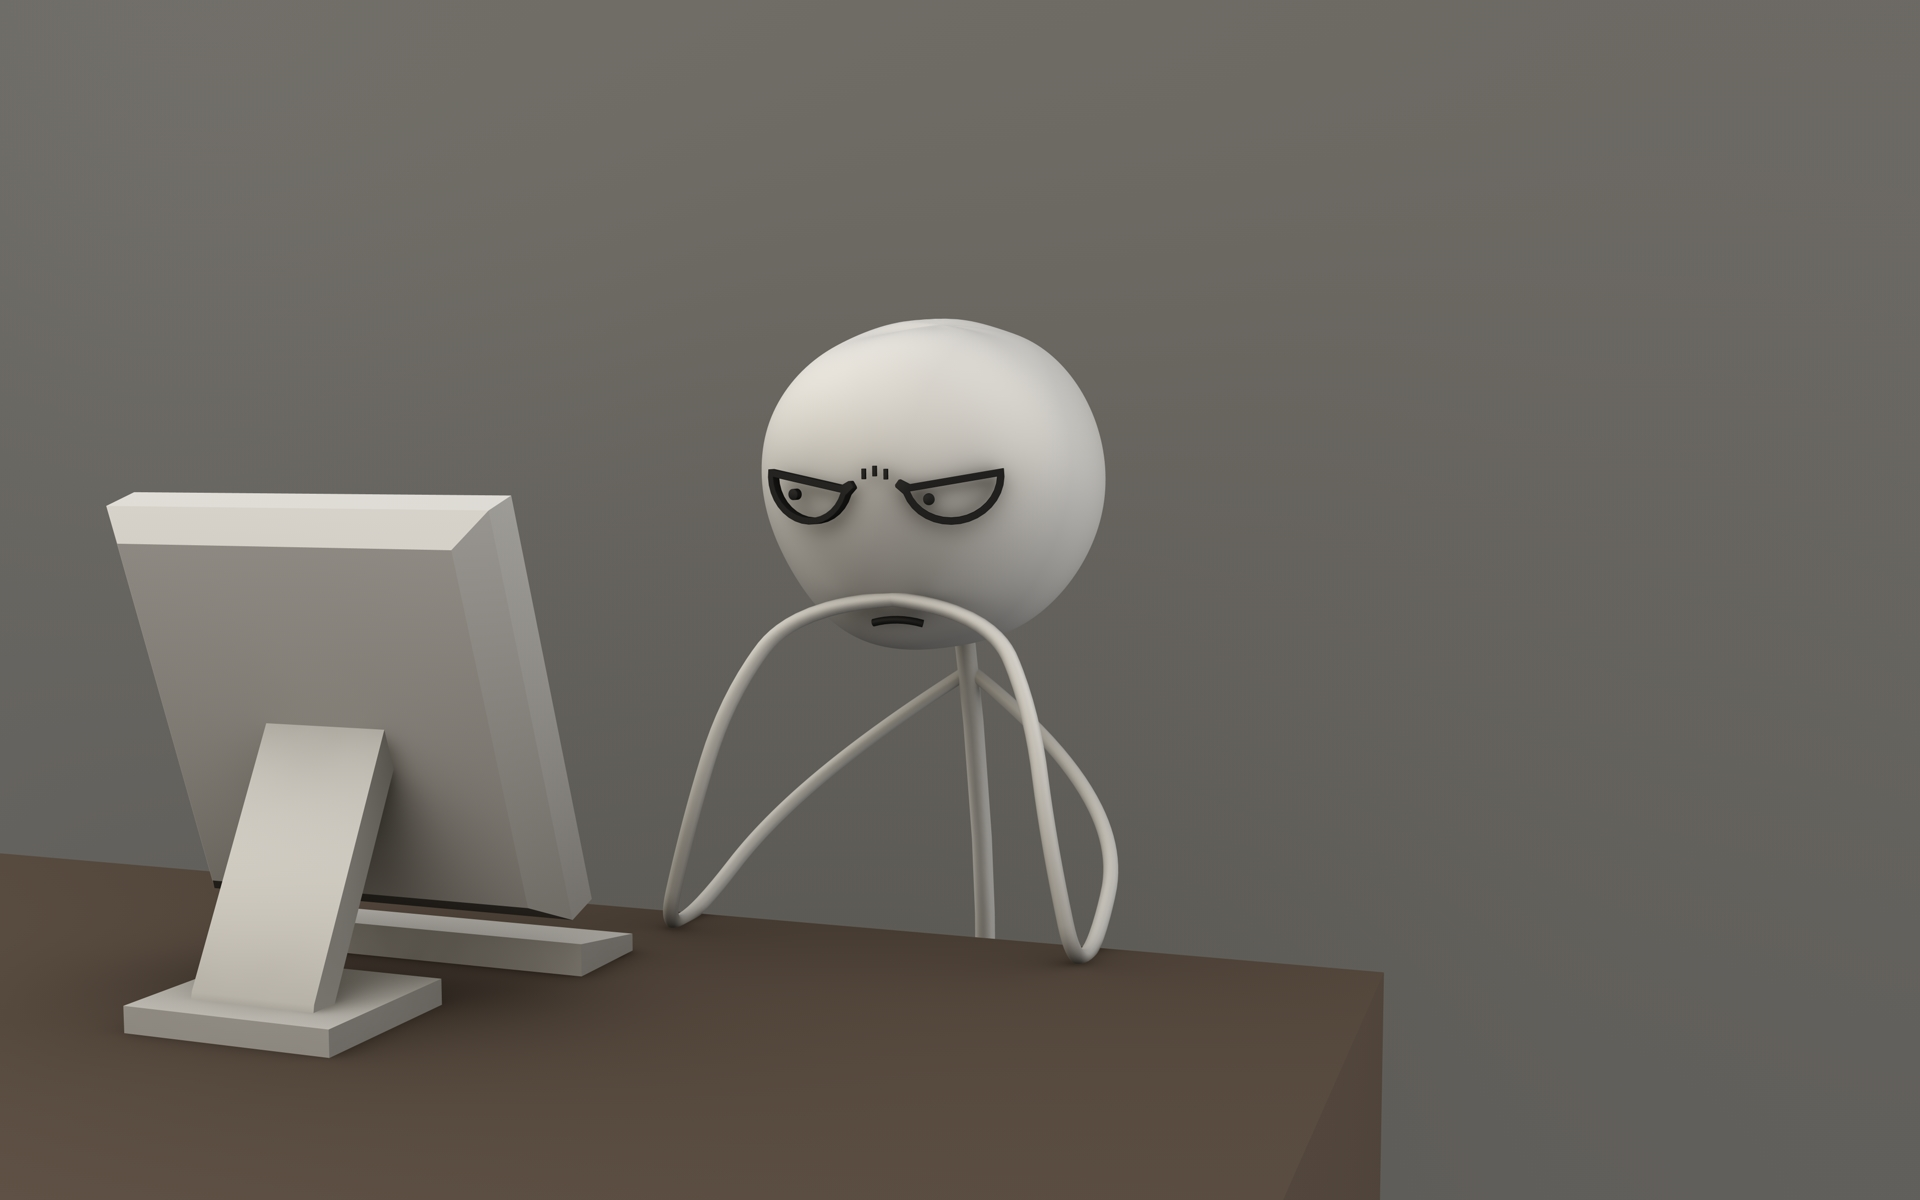 Computer guy meme by cr8g on DeviantArt Angry Computer Guy